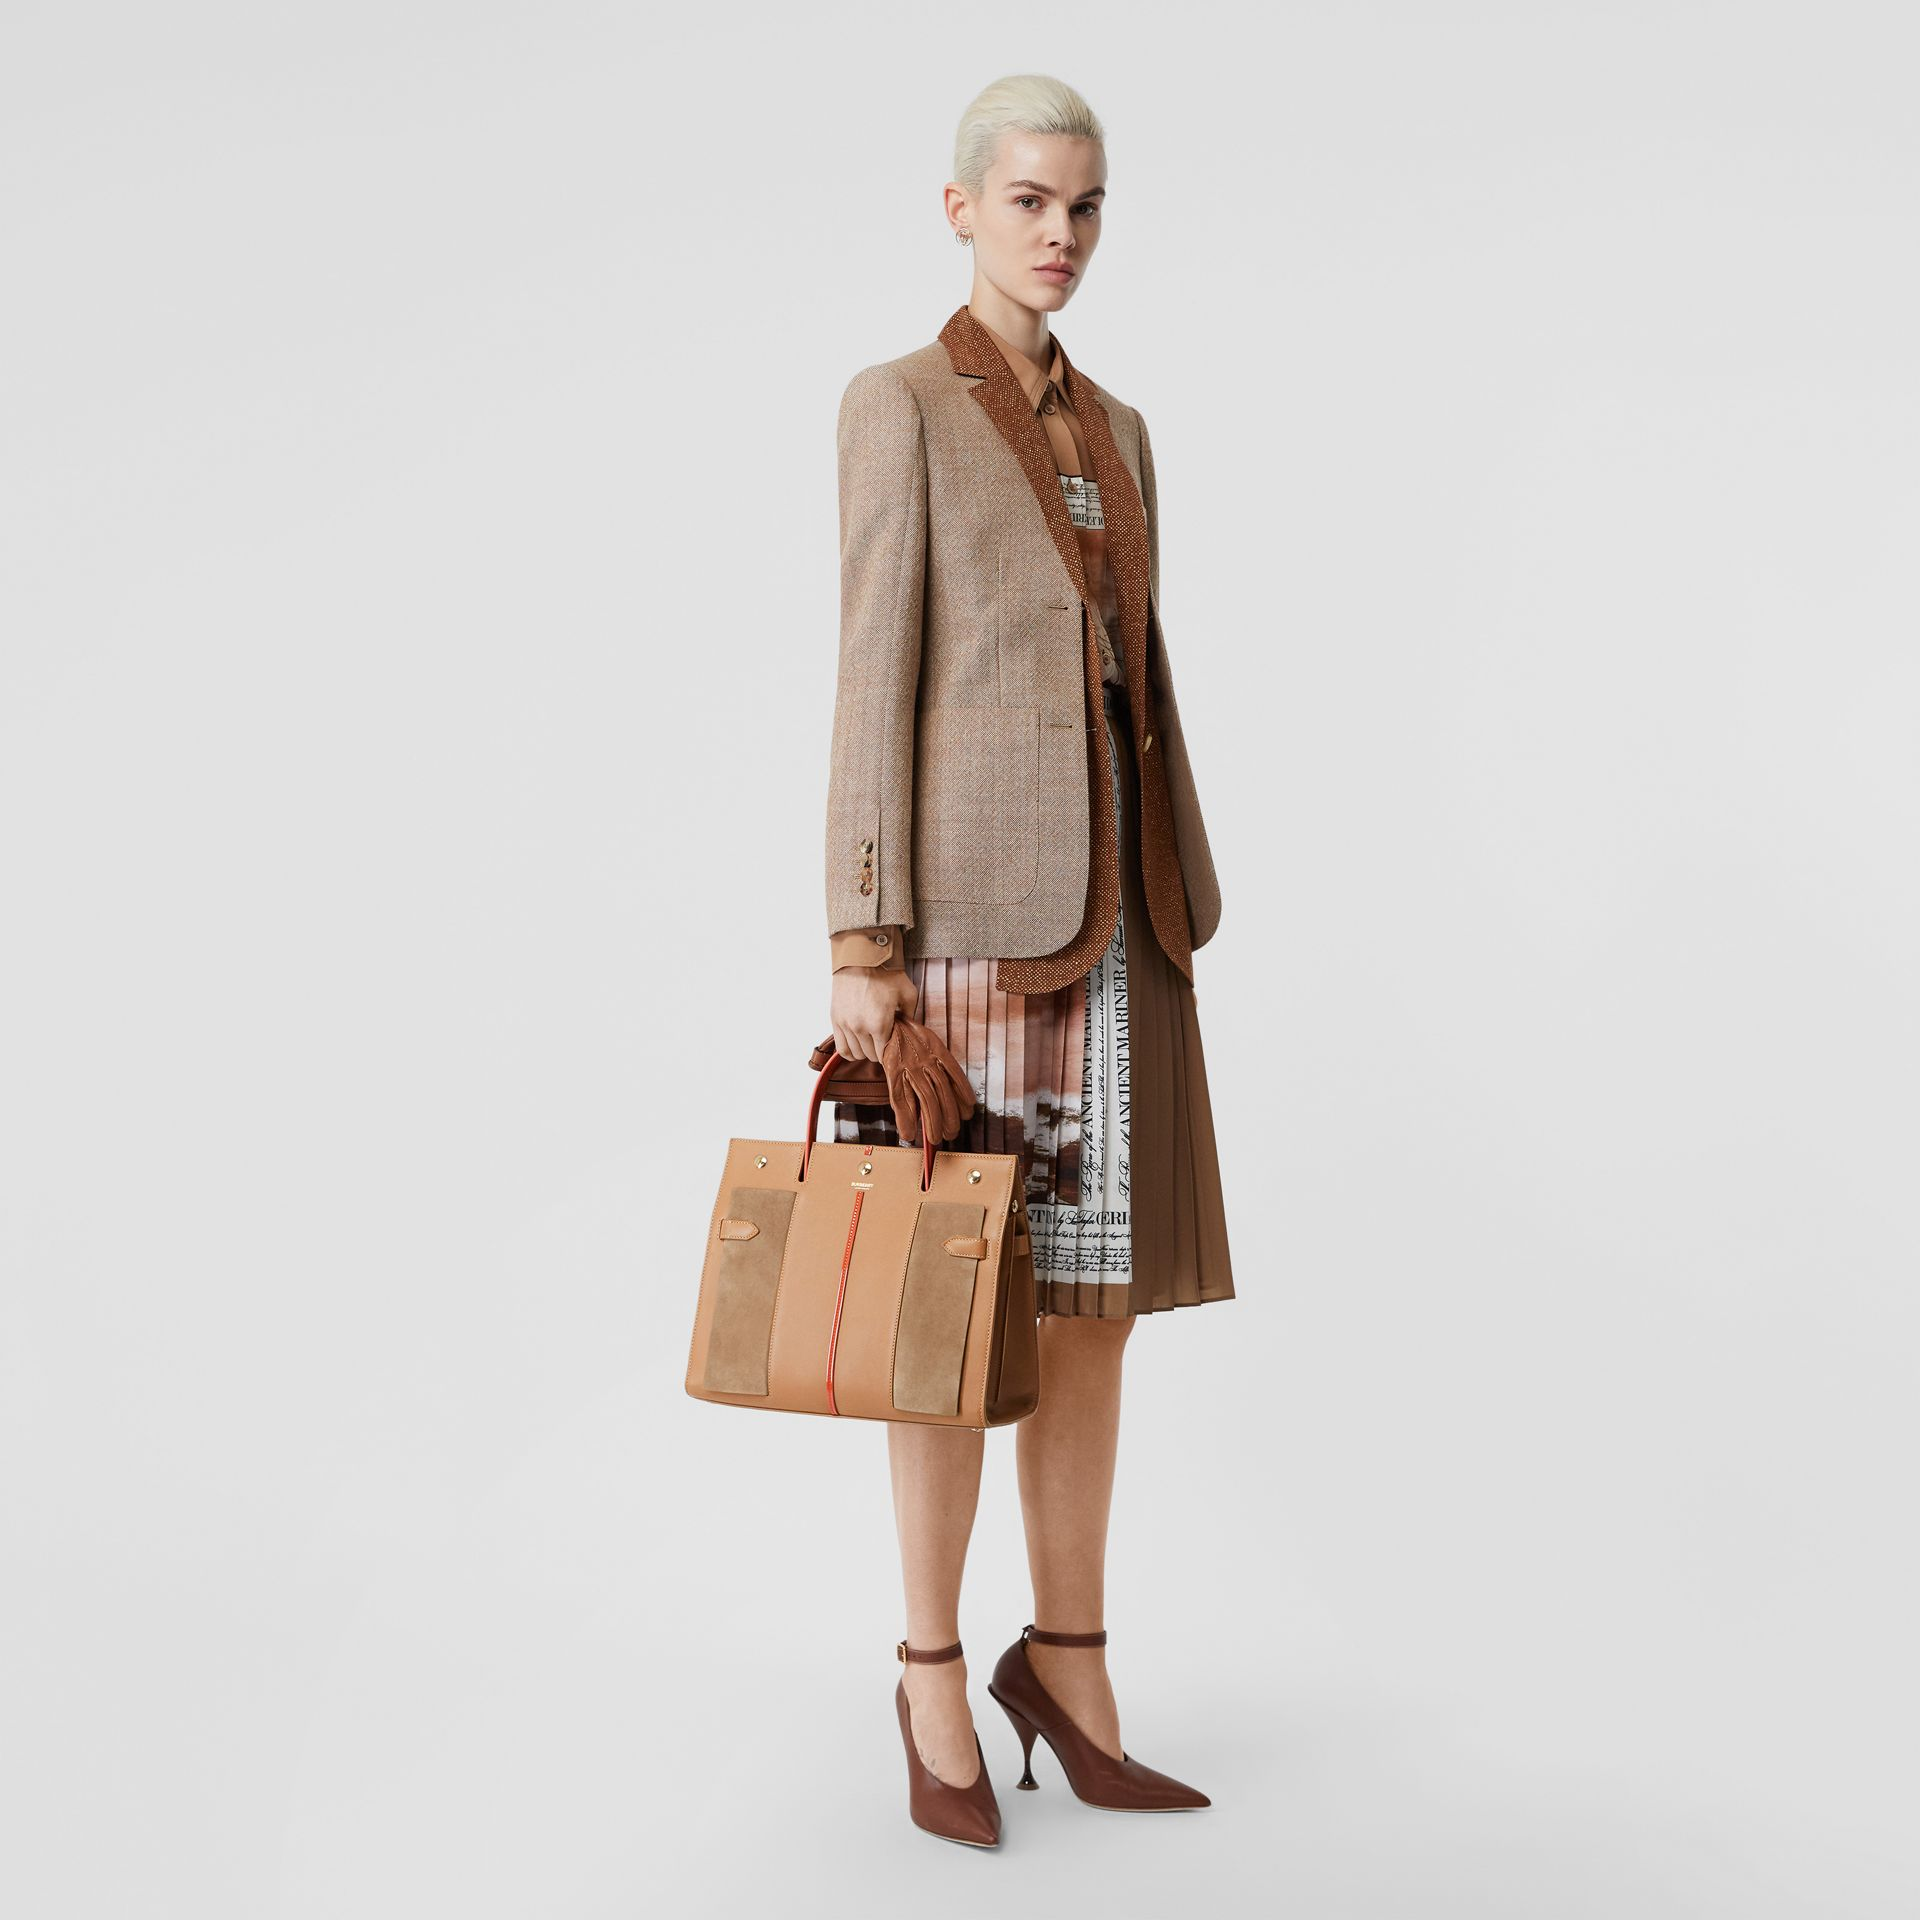 Medium Leather and Suede Title Bag in Warm Camel - Women | Burberry Australia - gallery image 5